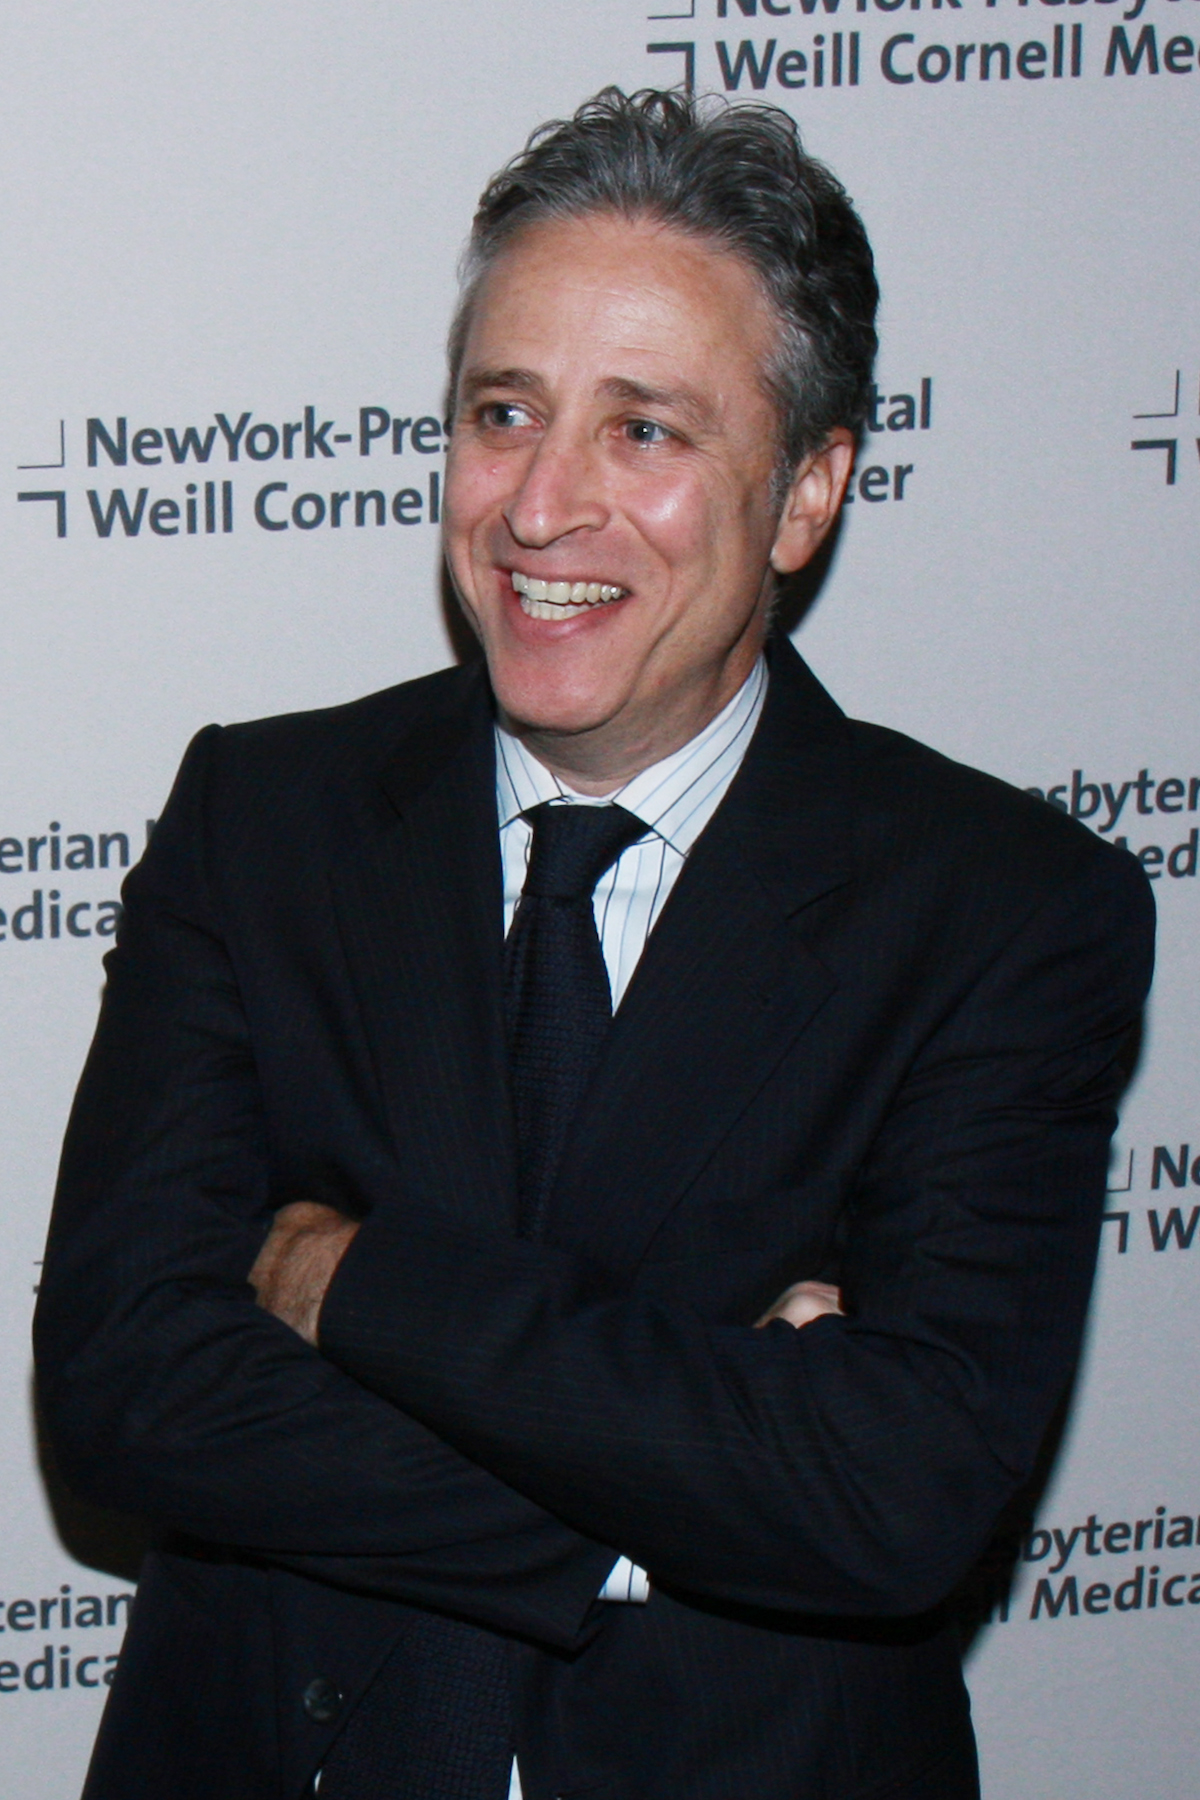 Jon Stewart - Wikipedia, the free encyclopedia